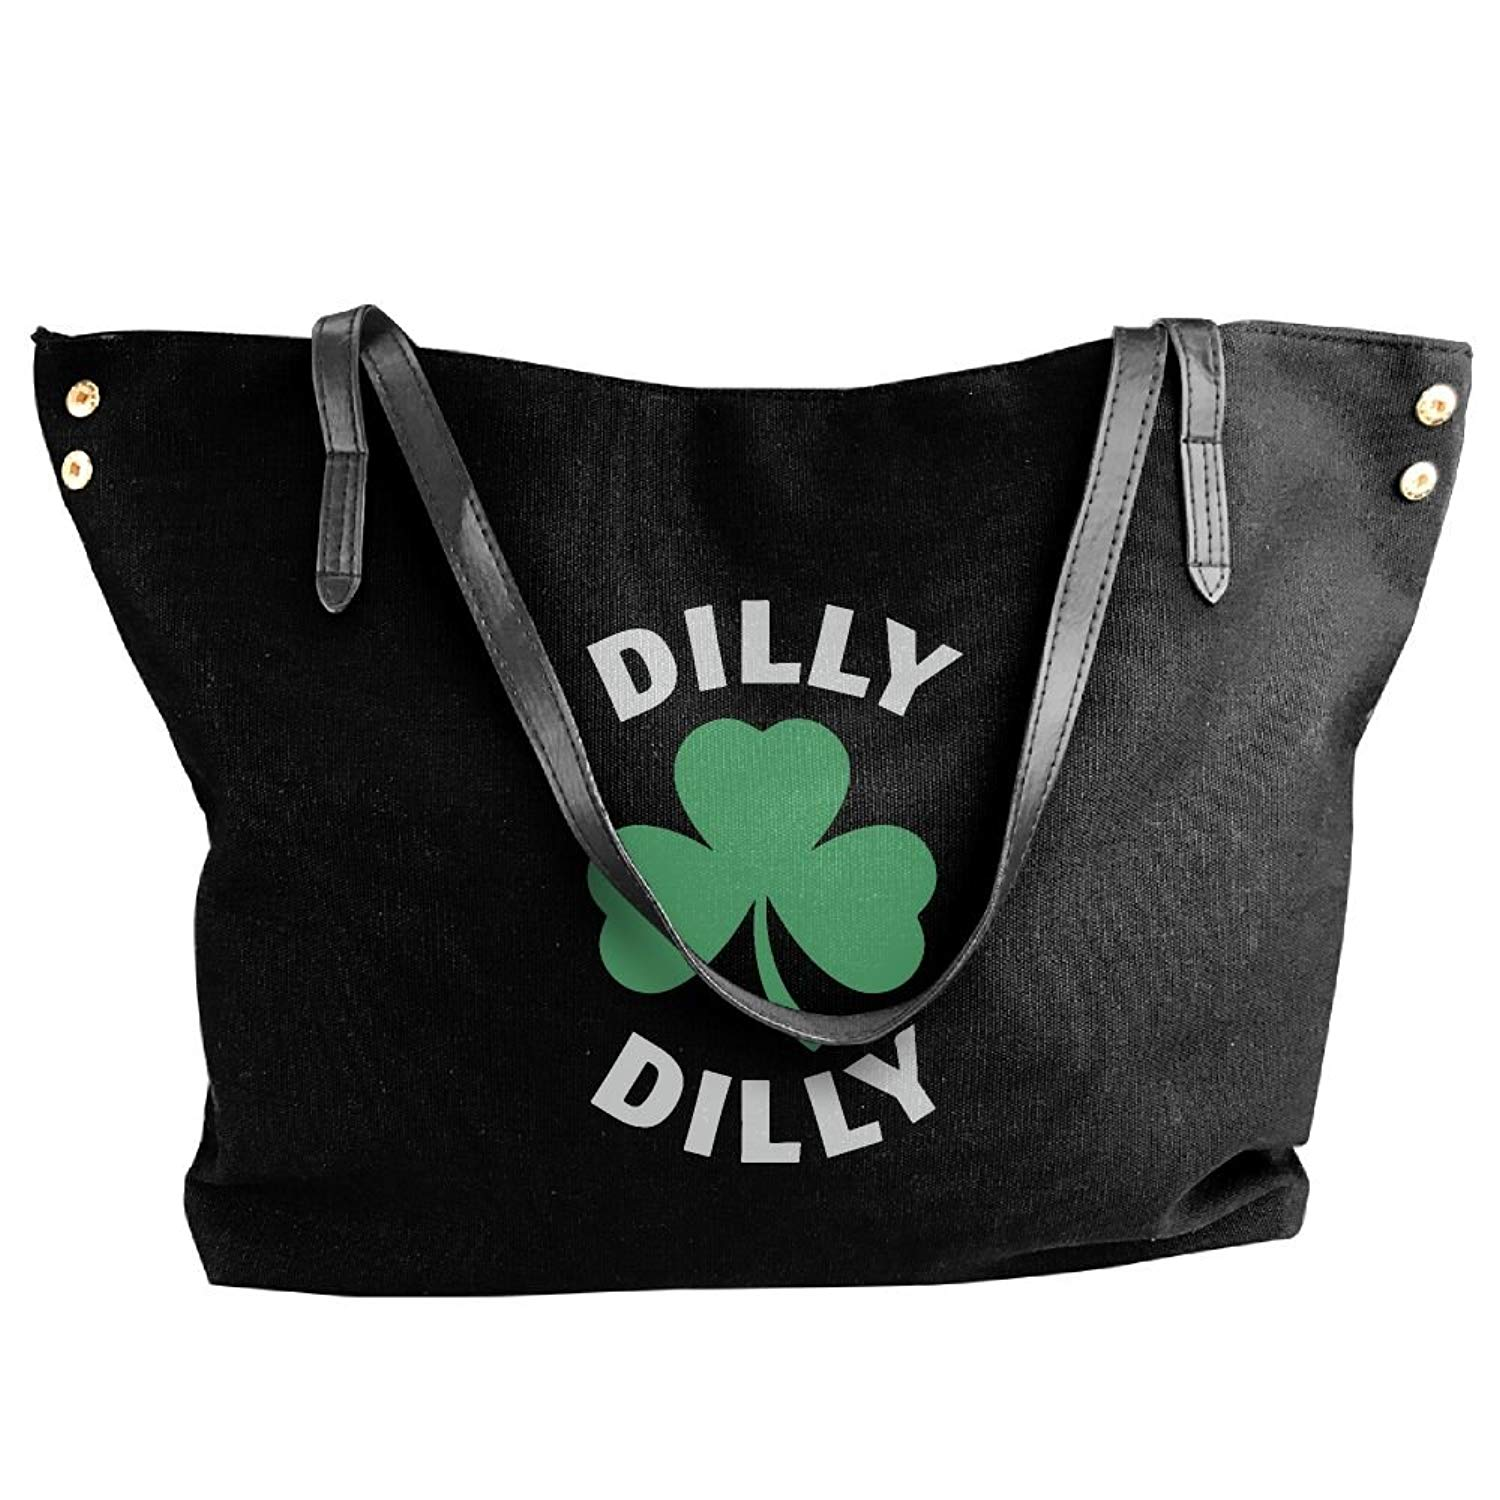 Women's Canvas Large Tote Shoulder Handbag Dilly Dilly Saint Patricks Day Hand Bag